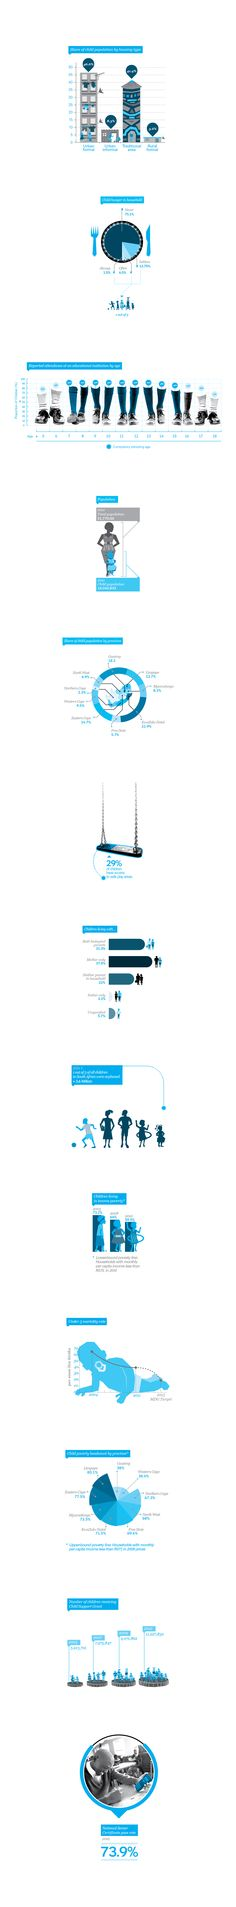 UNICEF Annual Report on Behance